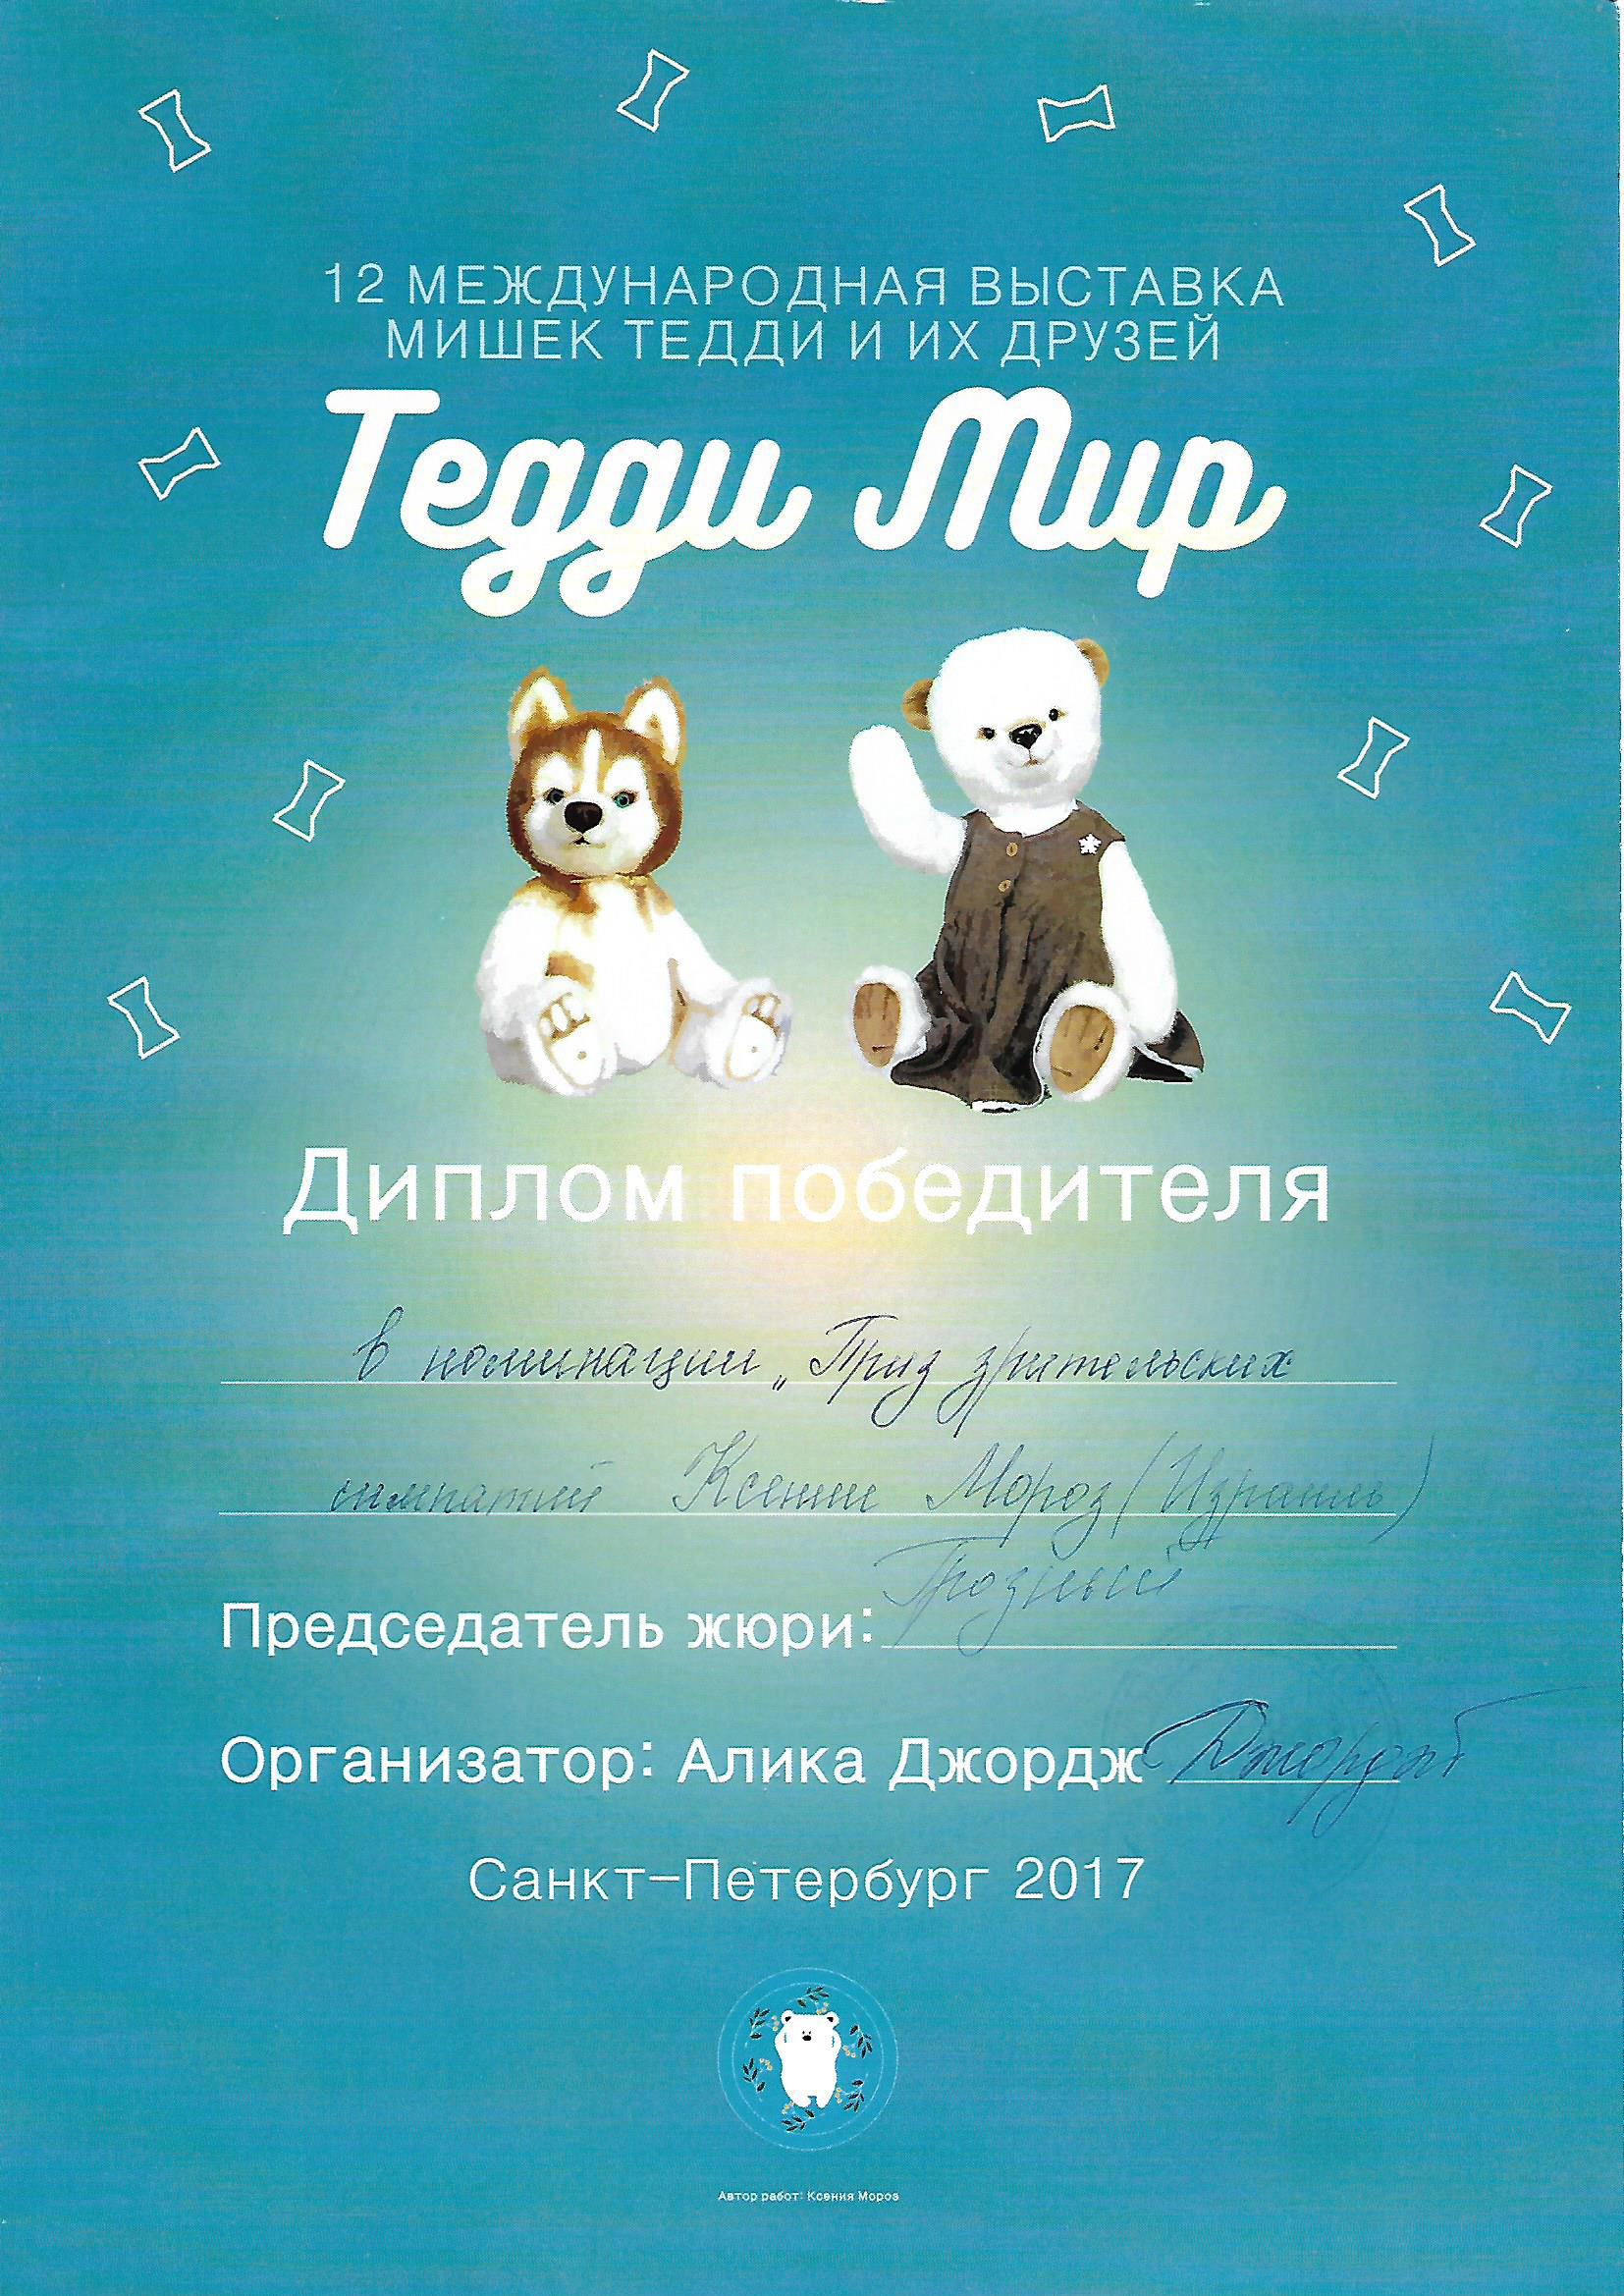 Teddy World 2017/ S.-Petersburg